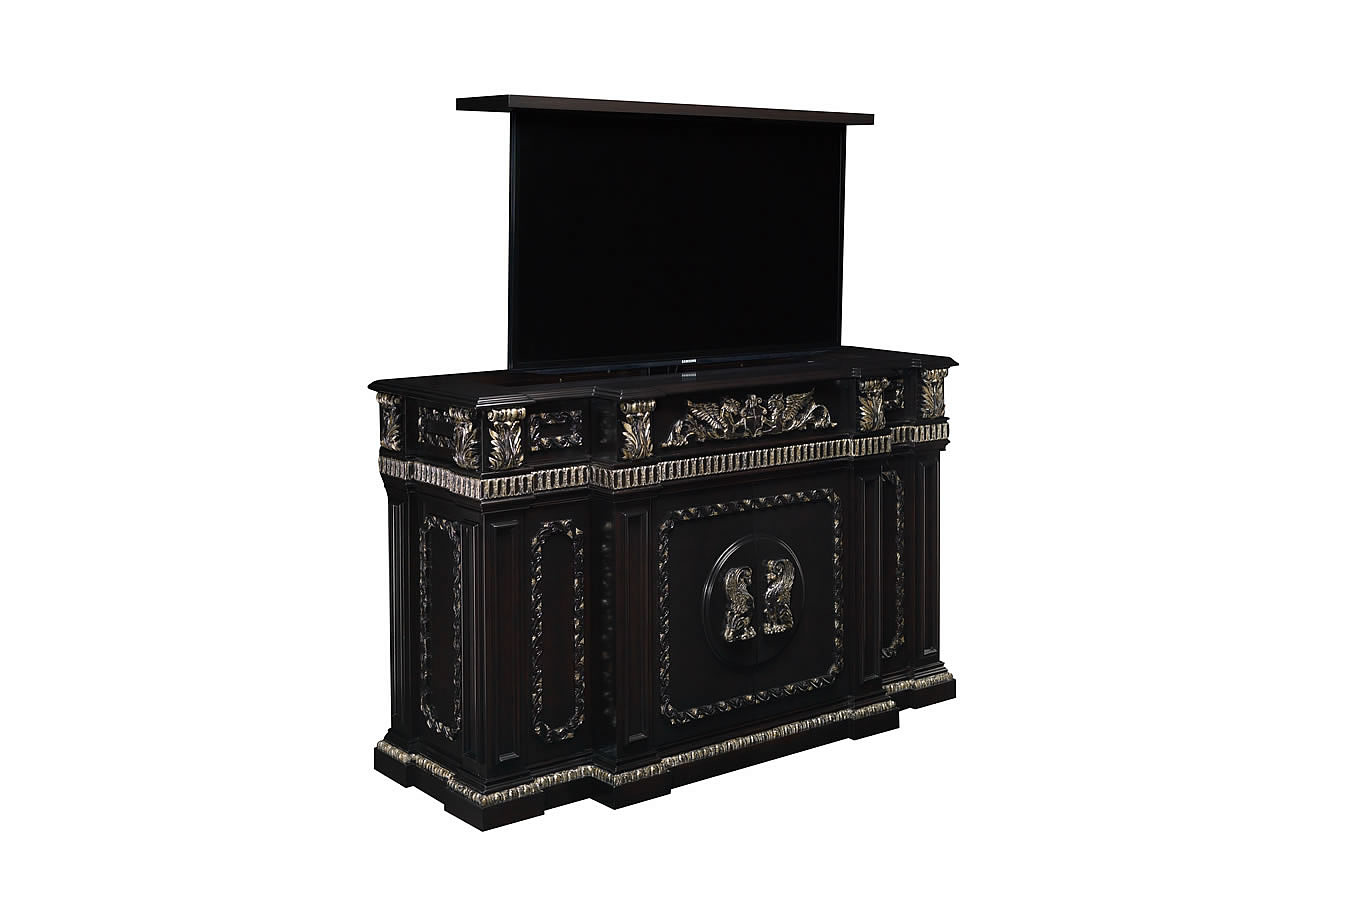 Regal Creek carved TV lift furniture cabinet